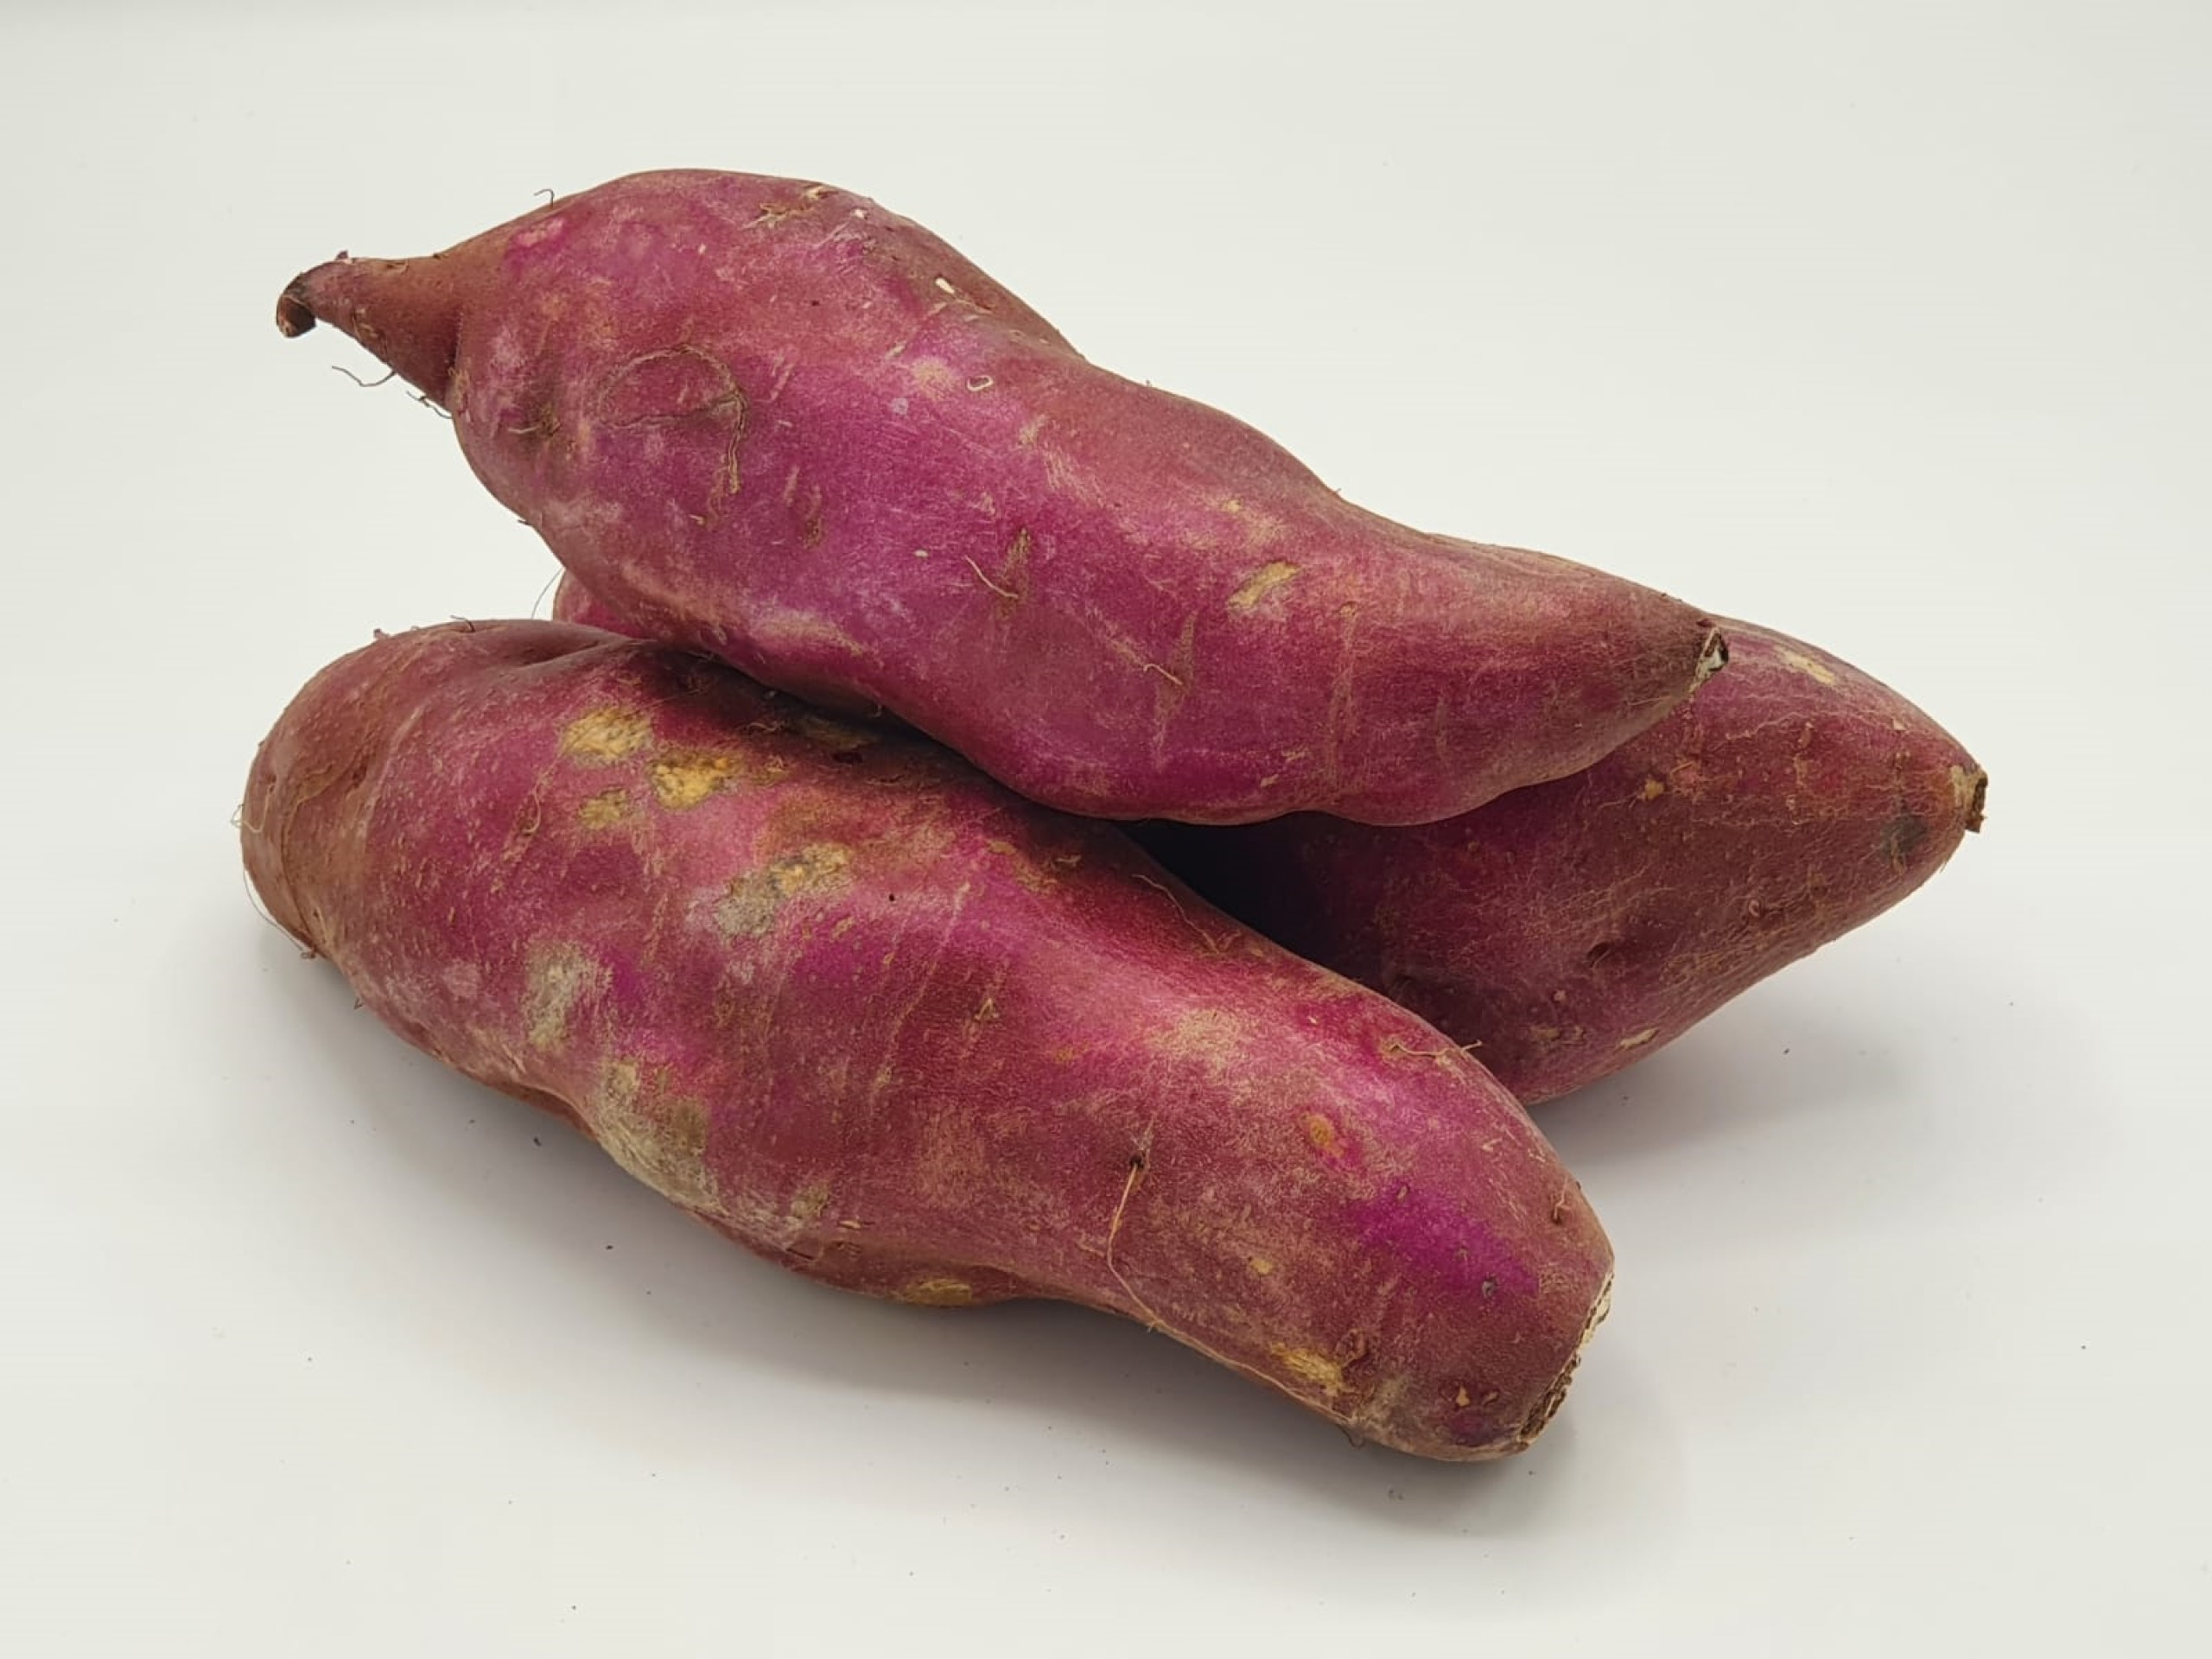 Red Sweet Potato